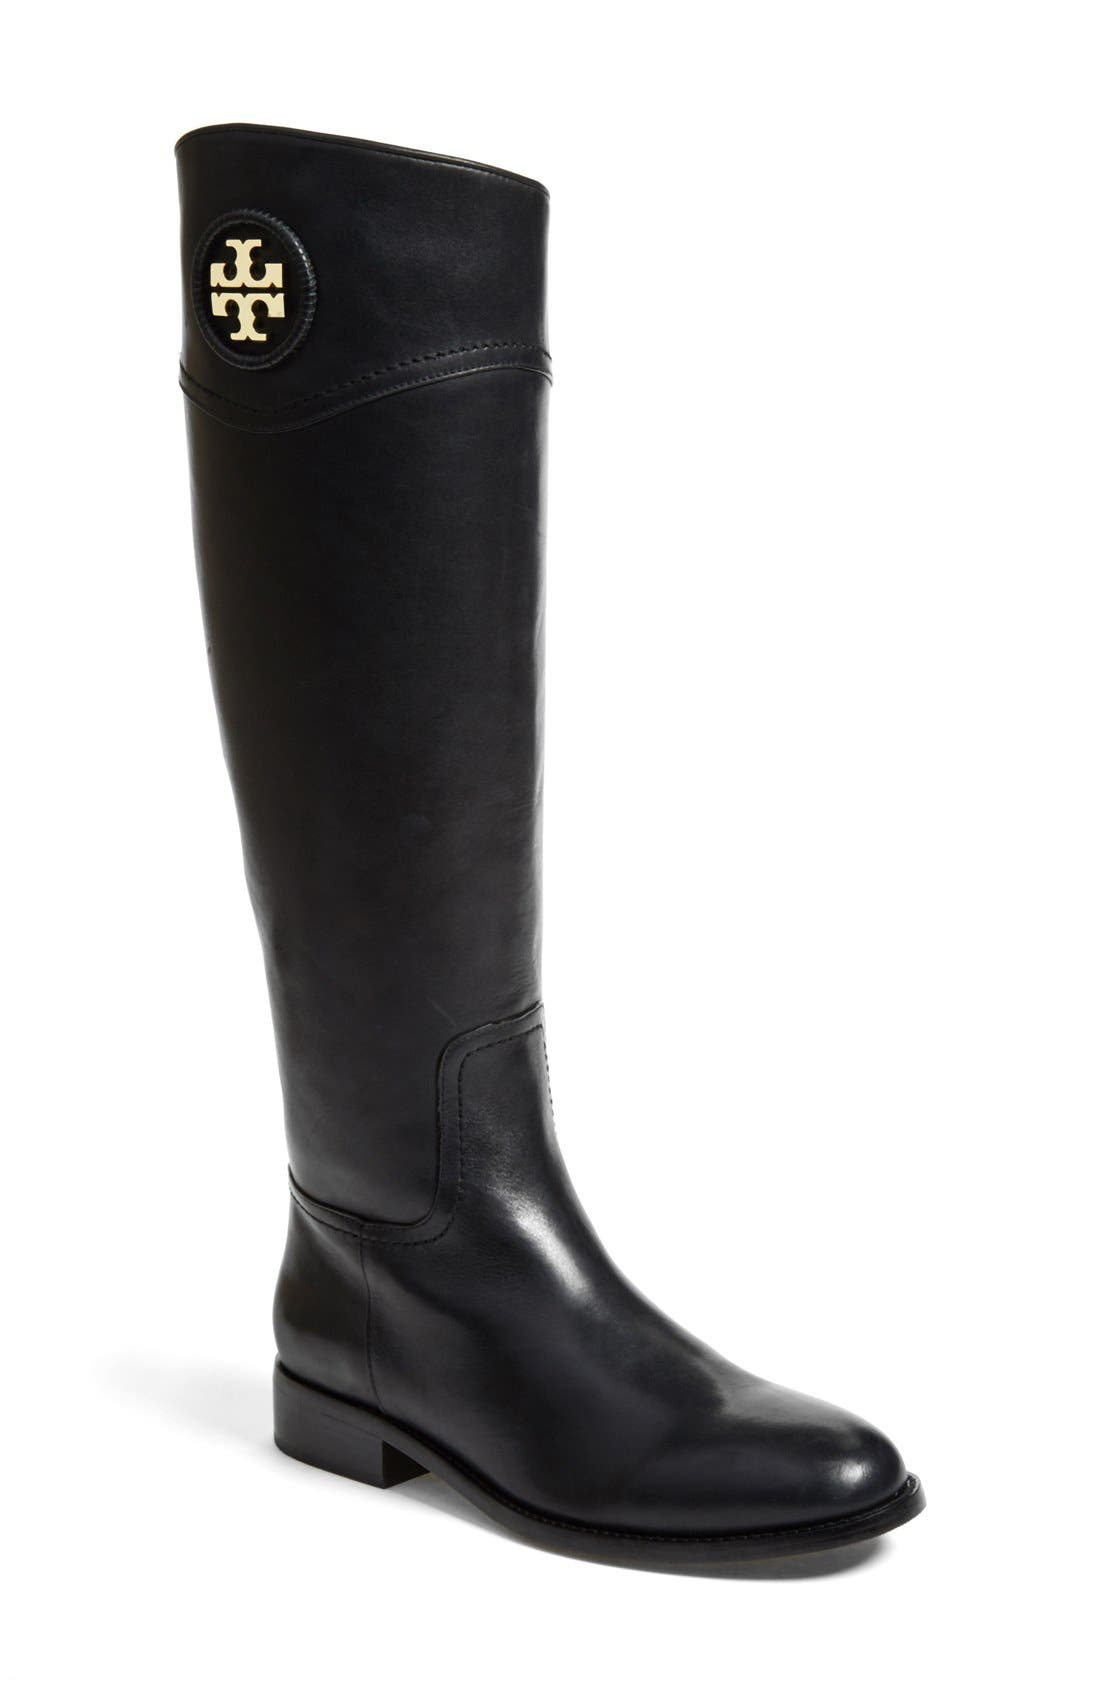 Main Image - Tory Burch 'Ashlynn' Riding Boot (Women) (Nordstrom Exclusive)